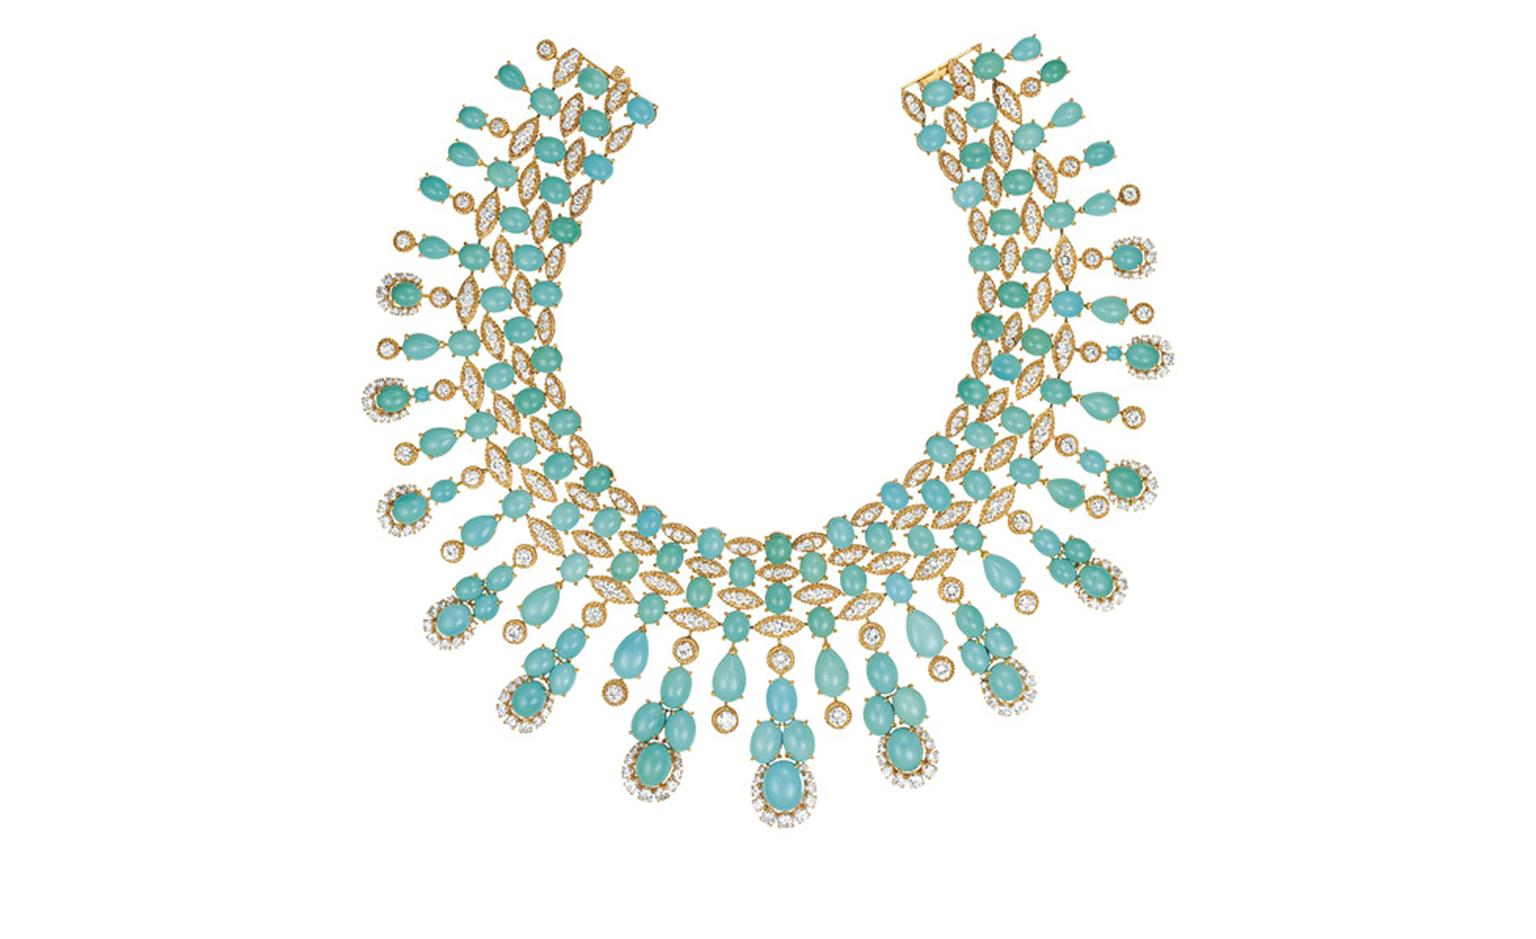 Van Cleef & Arpels Panka necklace. Gold, diamonds & turquoise, 1974. Worn by Eva Mendes.